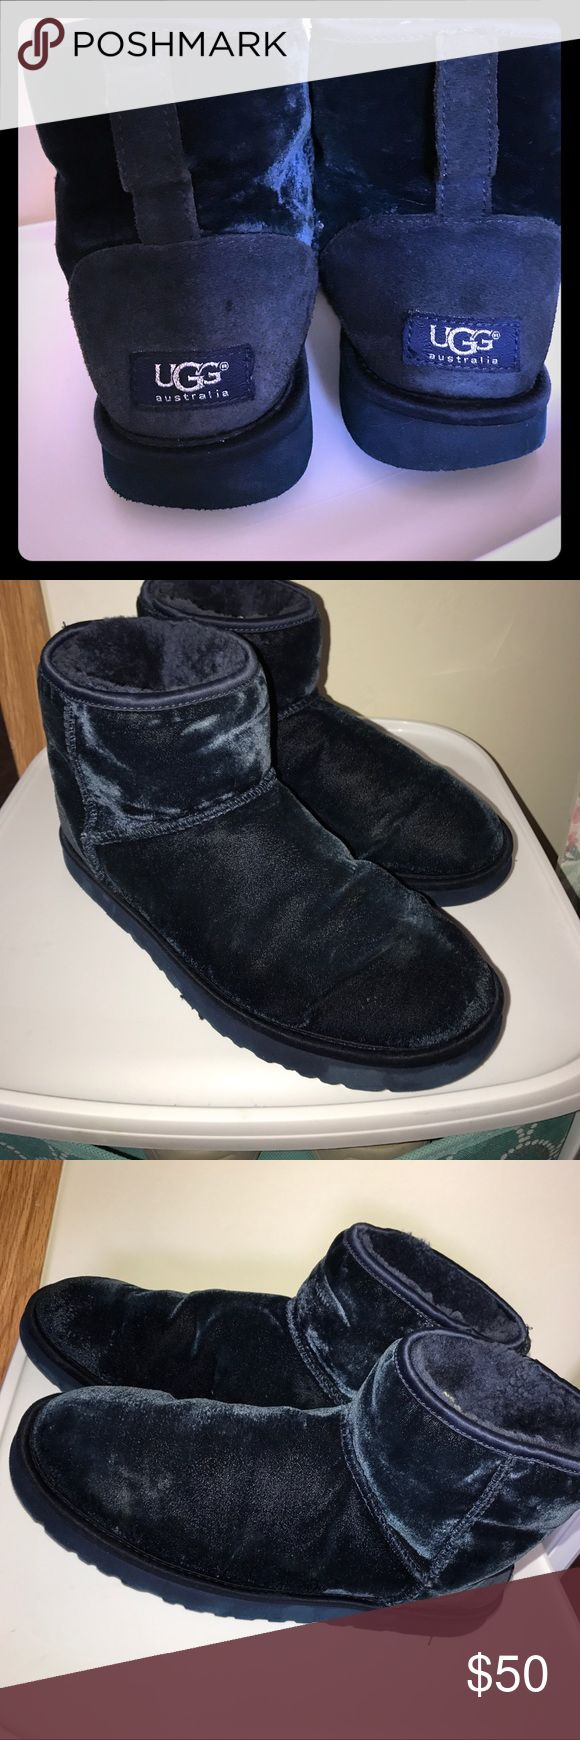 UGG Australia 1003633 Short Velvet Sheepskin Boots Good used condition. No stains or defects just wear on bottom which is normal UGG Shoes Ankle Boots & Booties